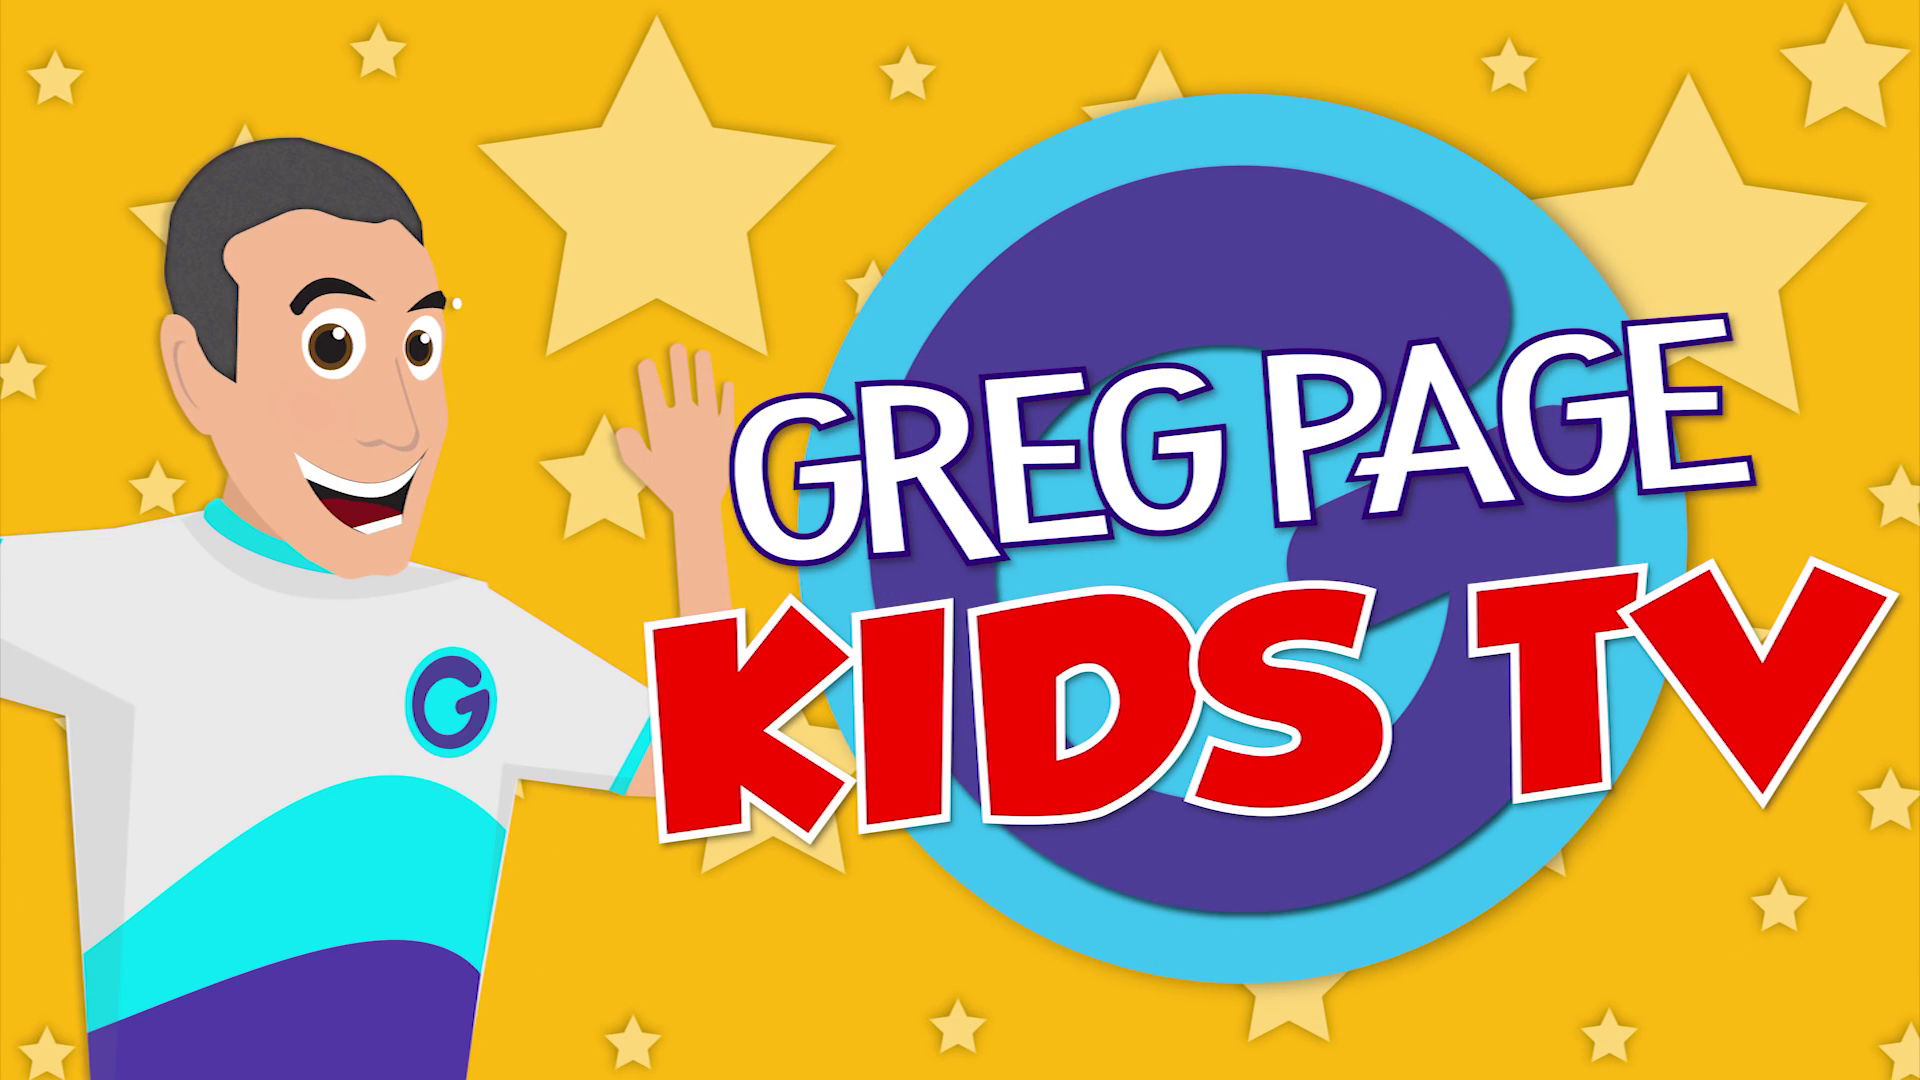 Rock And Roll Games >> Greg Page Kids TV   Wigglepedia   FANDOM powered by Wikia